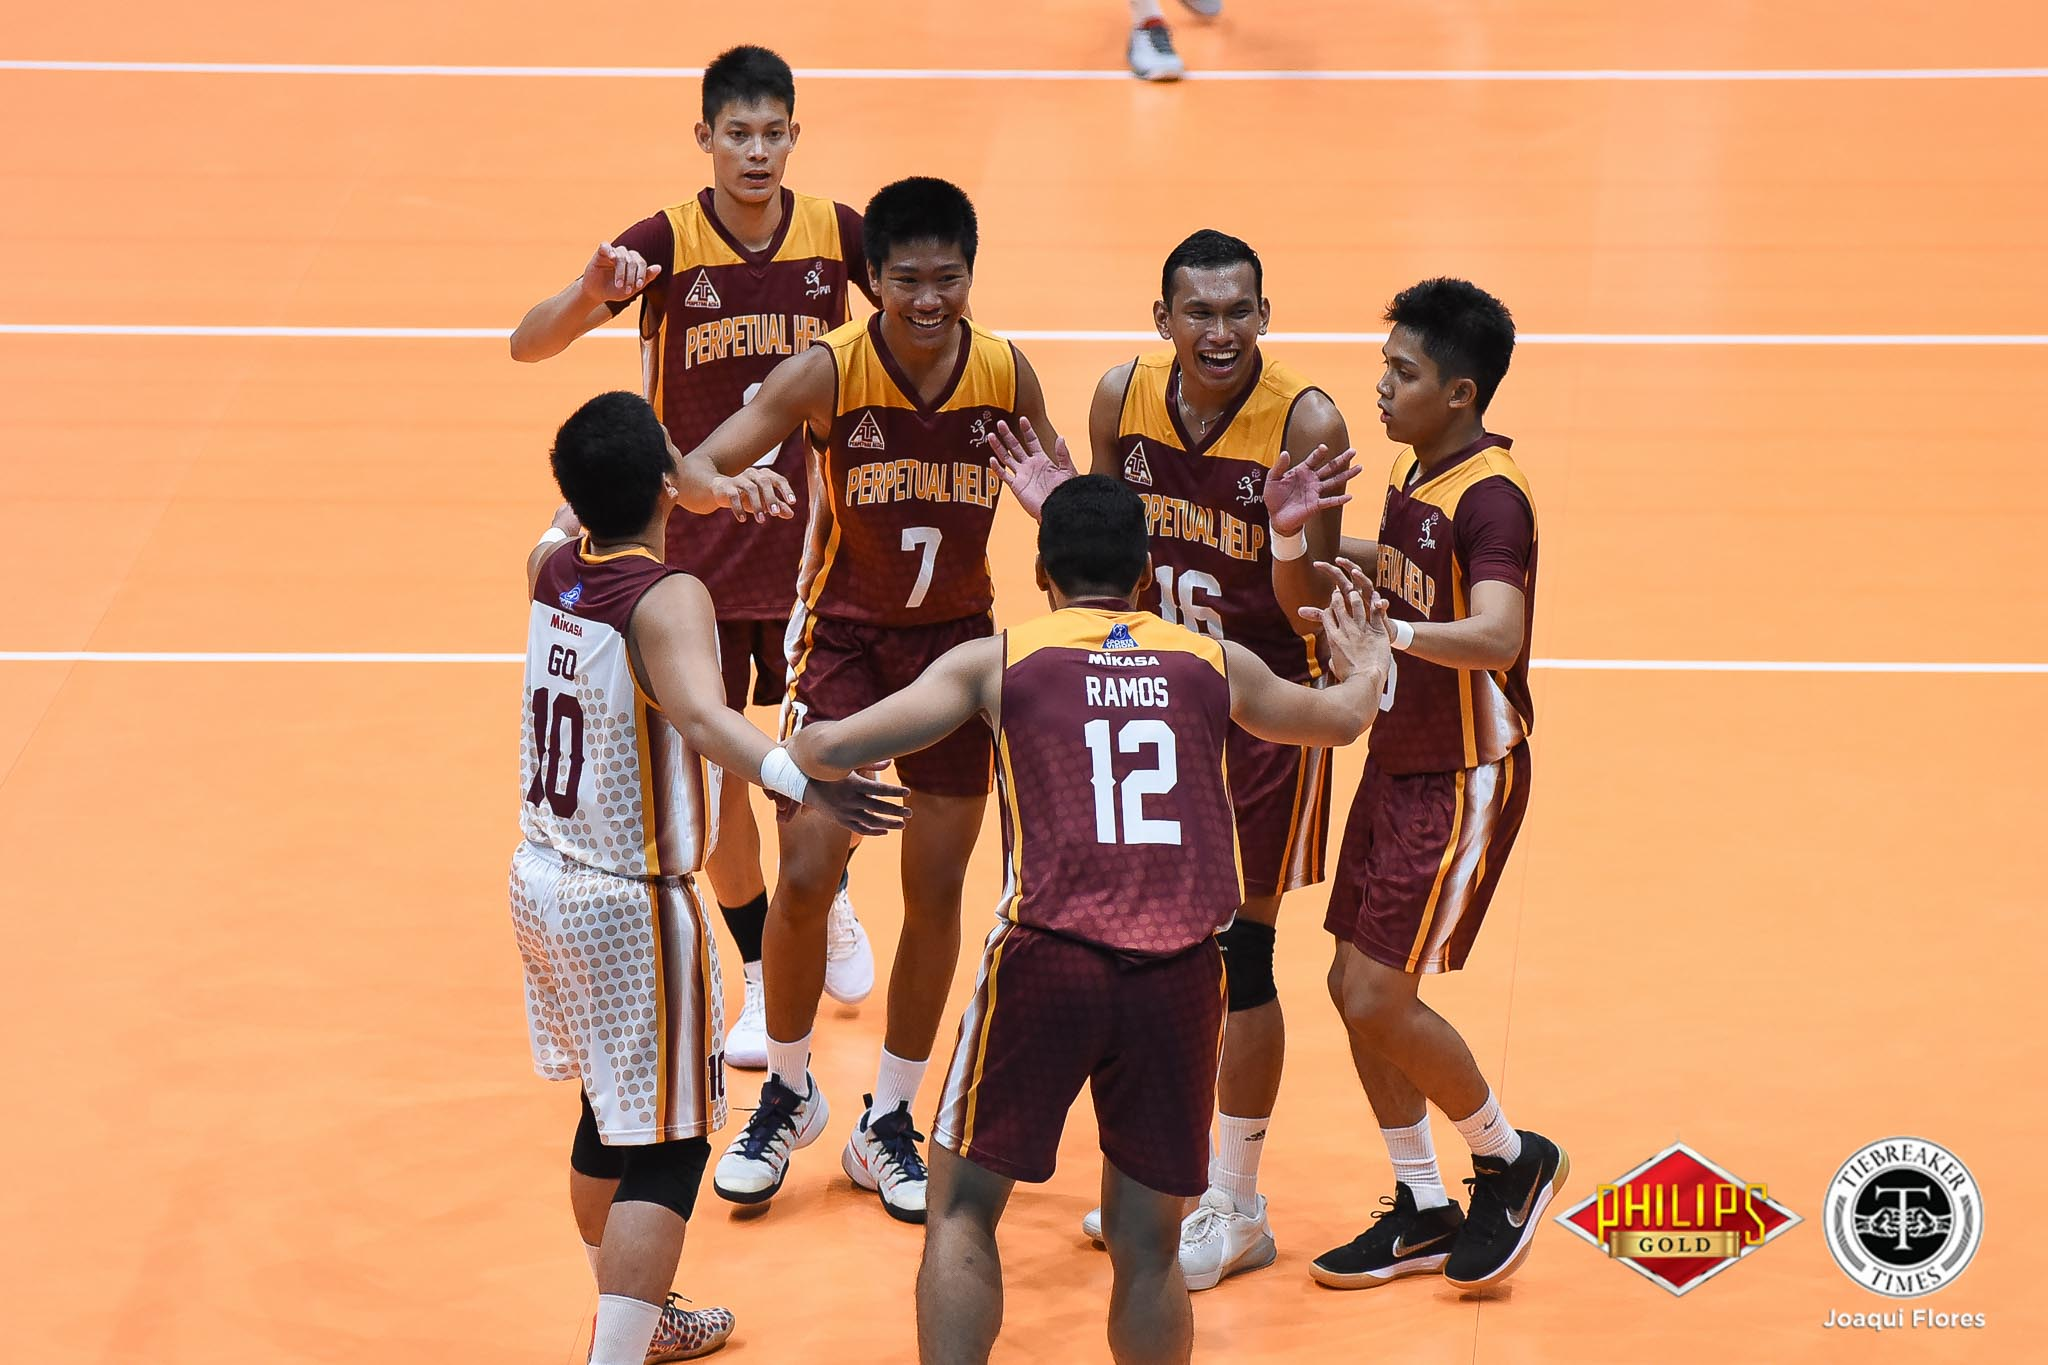 Tiebreaker Times Perpetual inches closer to another elims sweep CSB MIT NCAA News SSC-R UPHSD Volleyball  San Sebastian Men's Volleyball Sammy Acaylar Saint Benilde Men's Volleyball Ronley Adviento Roniel Rosales Romeo Teodones Perpetual Men's Volleyball NCAA Season 94 Men's Volleyball NCAA Season 94 Mark Egan Mapua Men's Volleyball Joebert Almodiel Francis Basilan Clint Malazo Arnold Laniog Aljoe Sereno